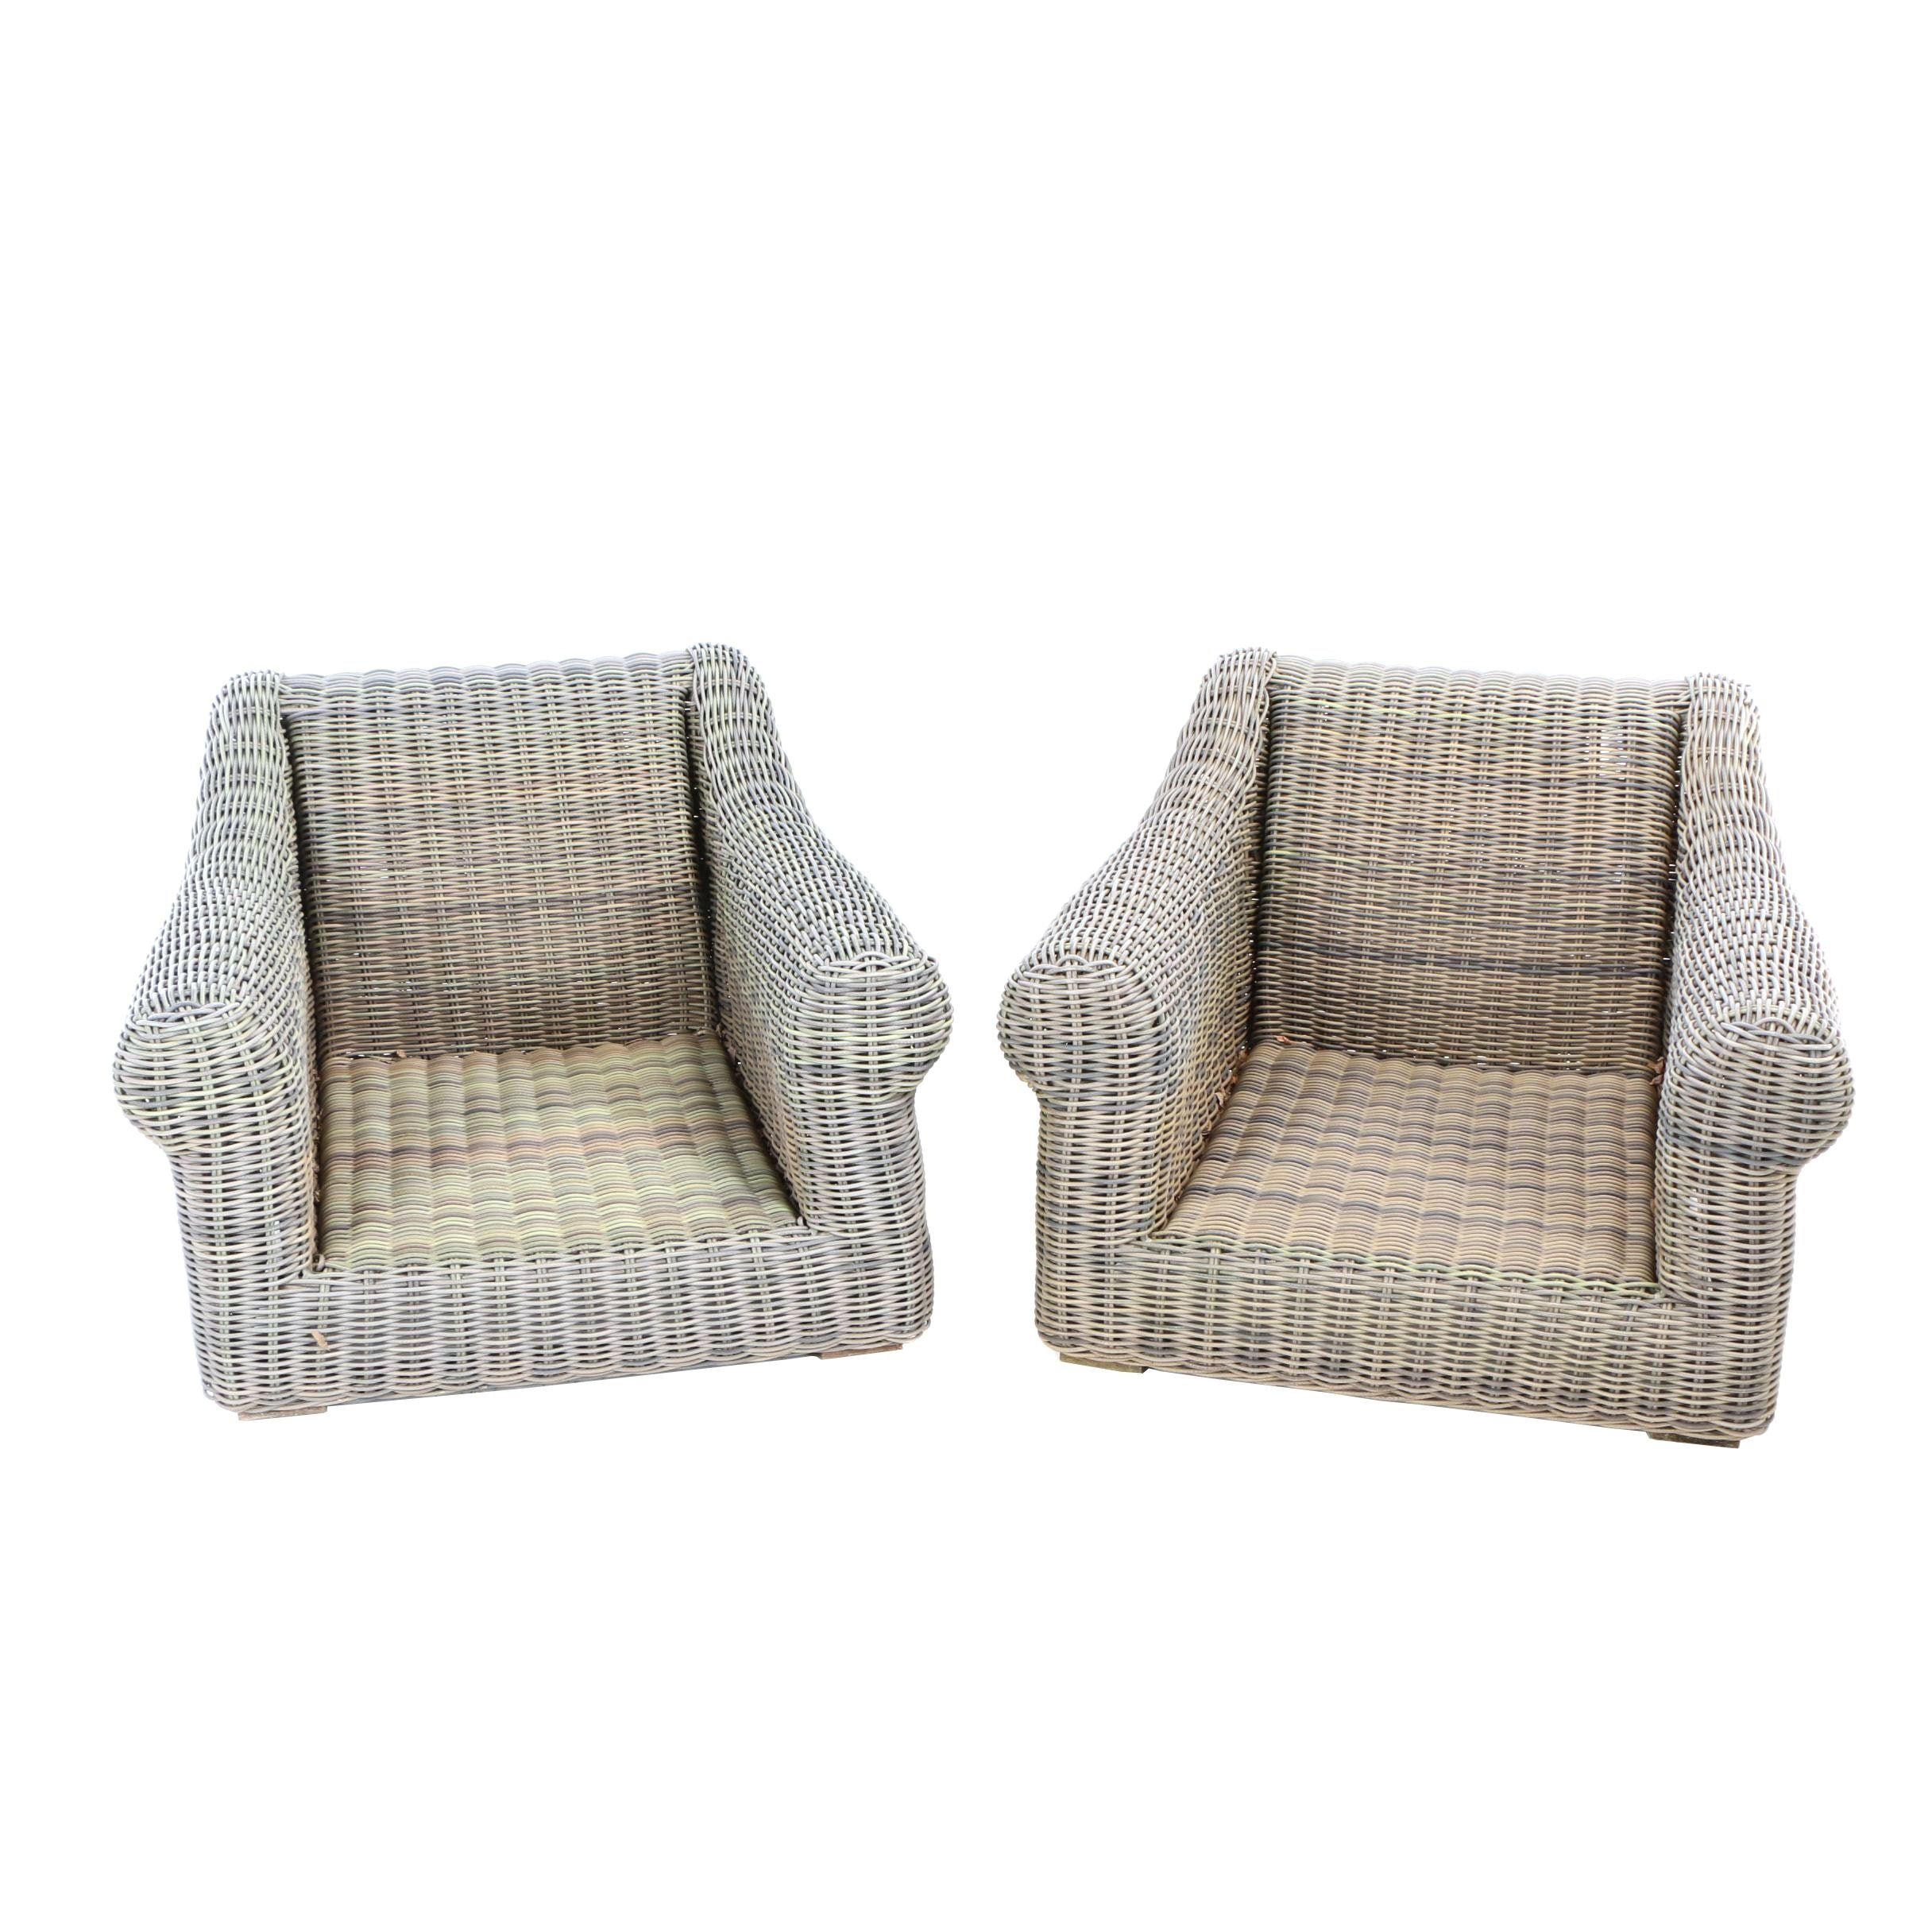 Pair of Contemporary Wicker Patio Lounge Chairs, Possibly Restoration Hardware